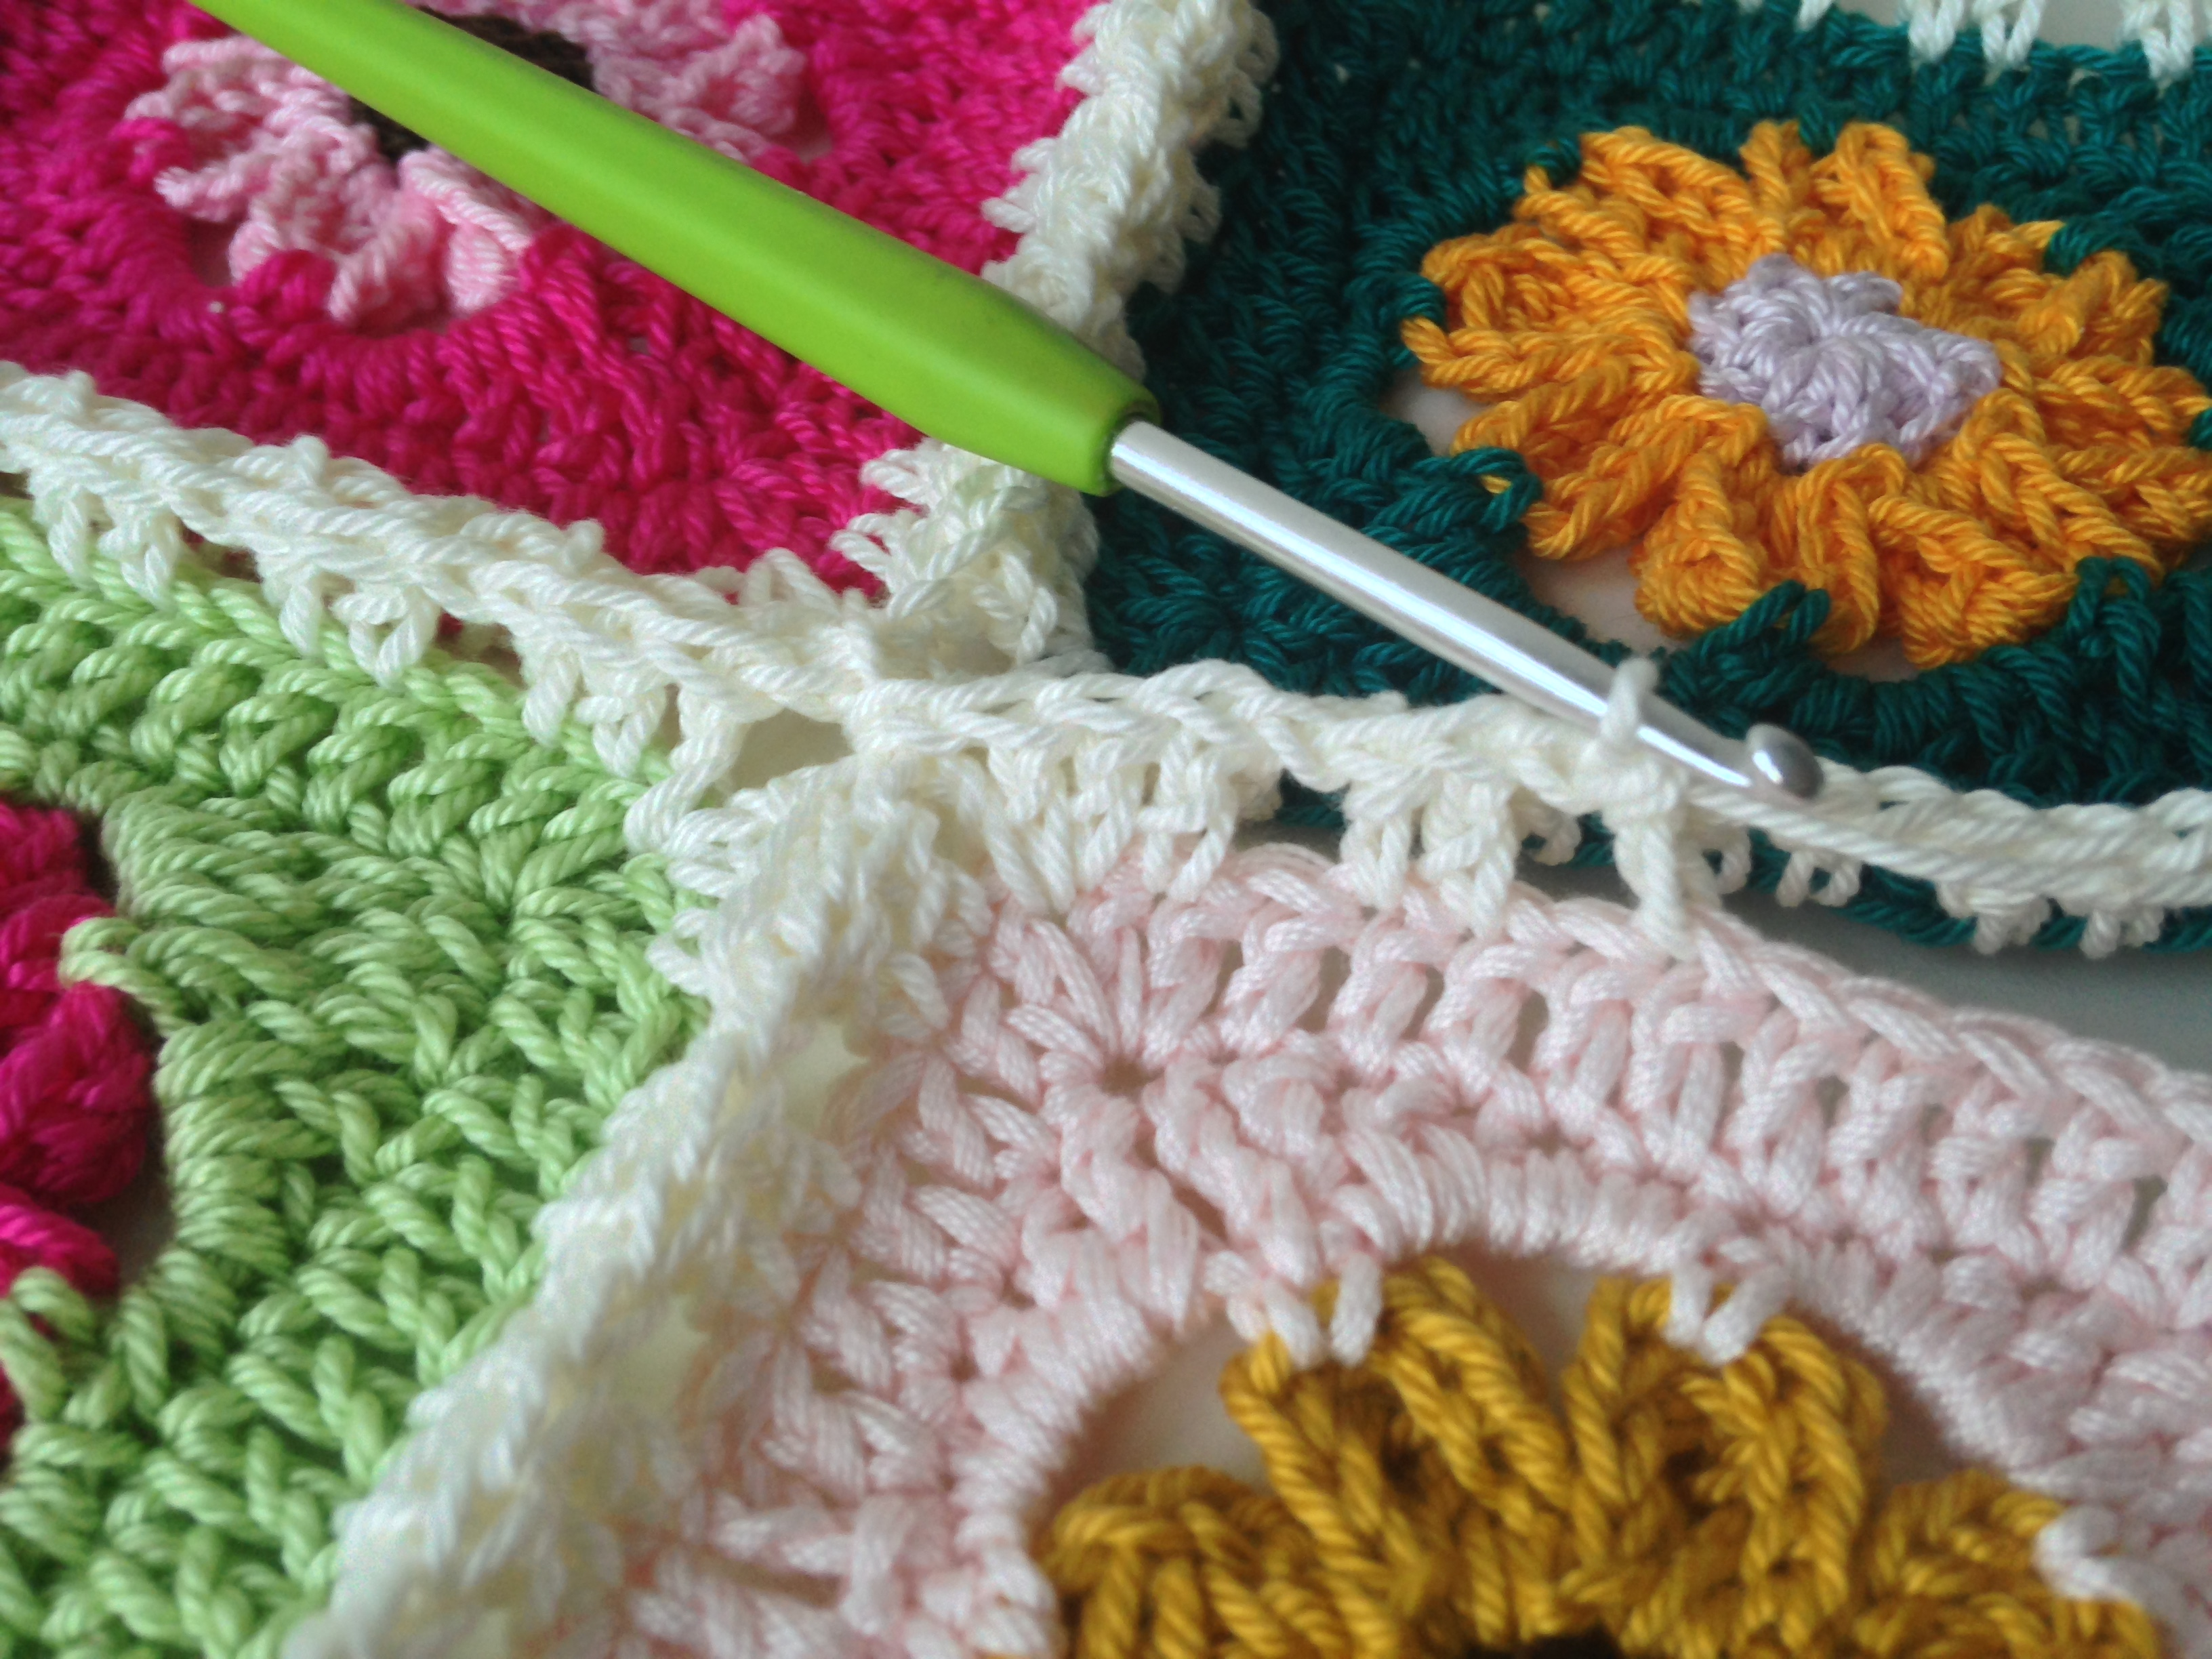 Crochet Stitches To Join Granny Squares : ... square, it really works very well using the continuous join as you go